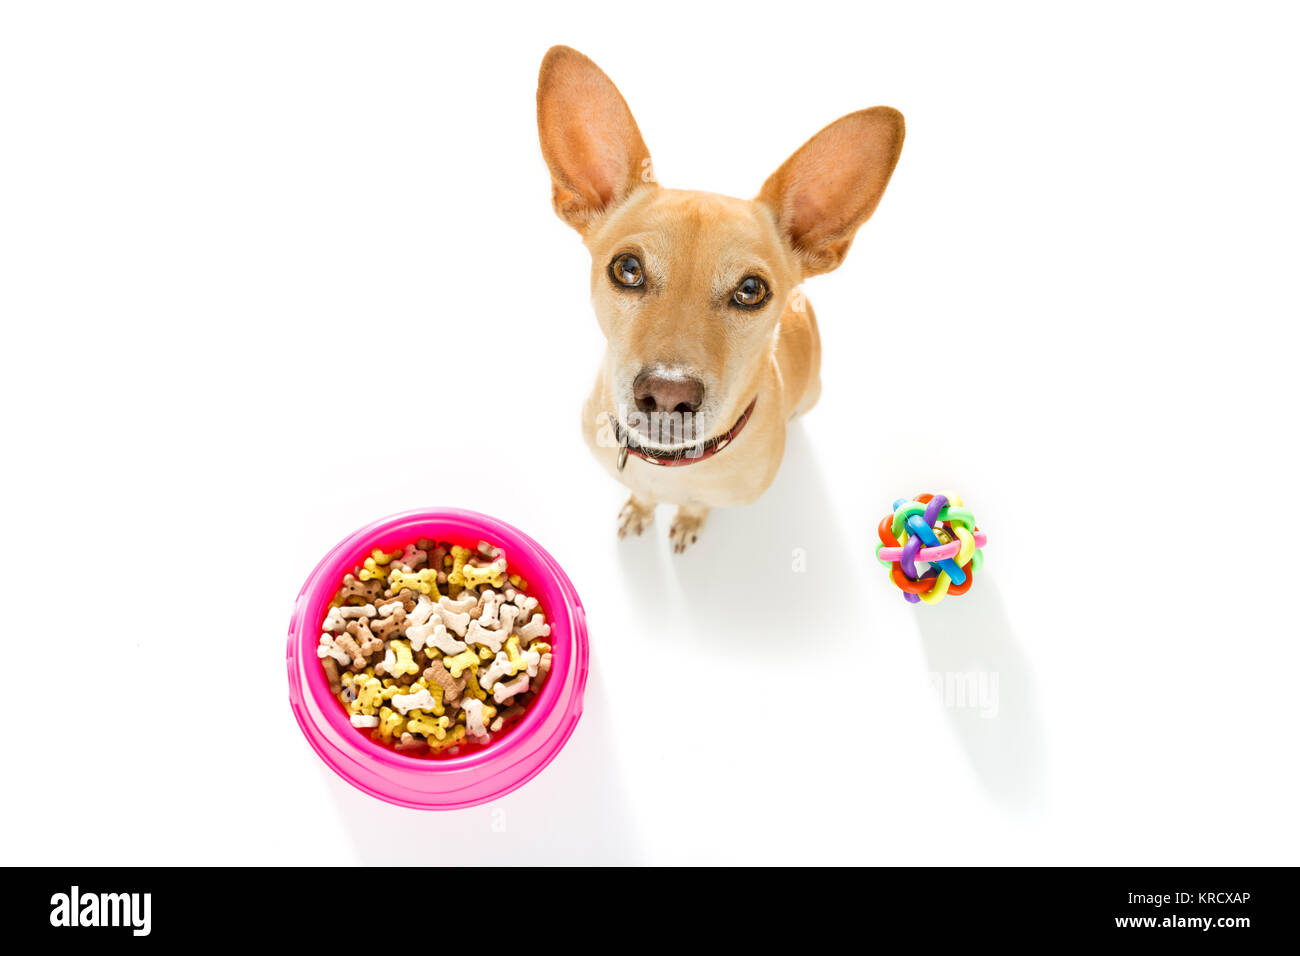 hungry  chihuahua podenco dog behind food bowl  isolated wood background at home and kitchen looking up  to owner - Stock Image